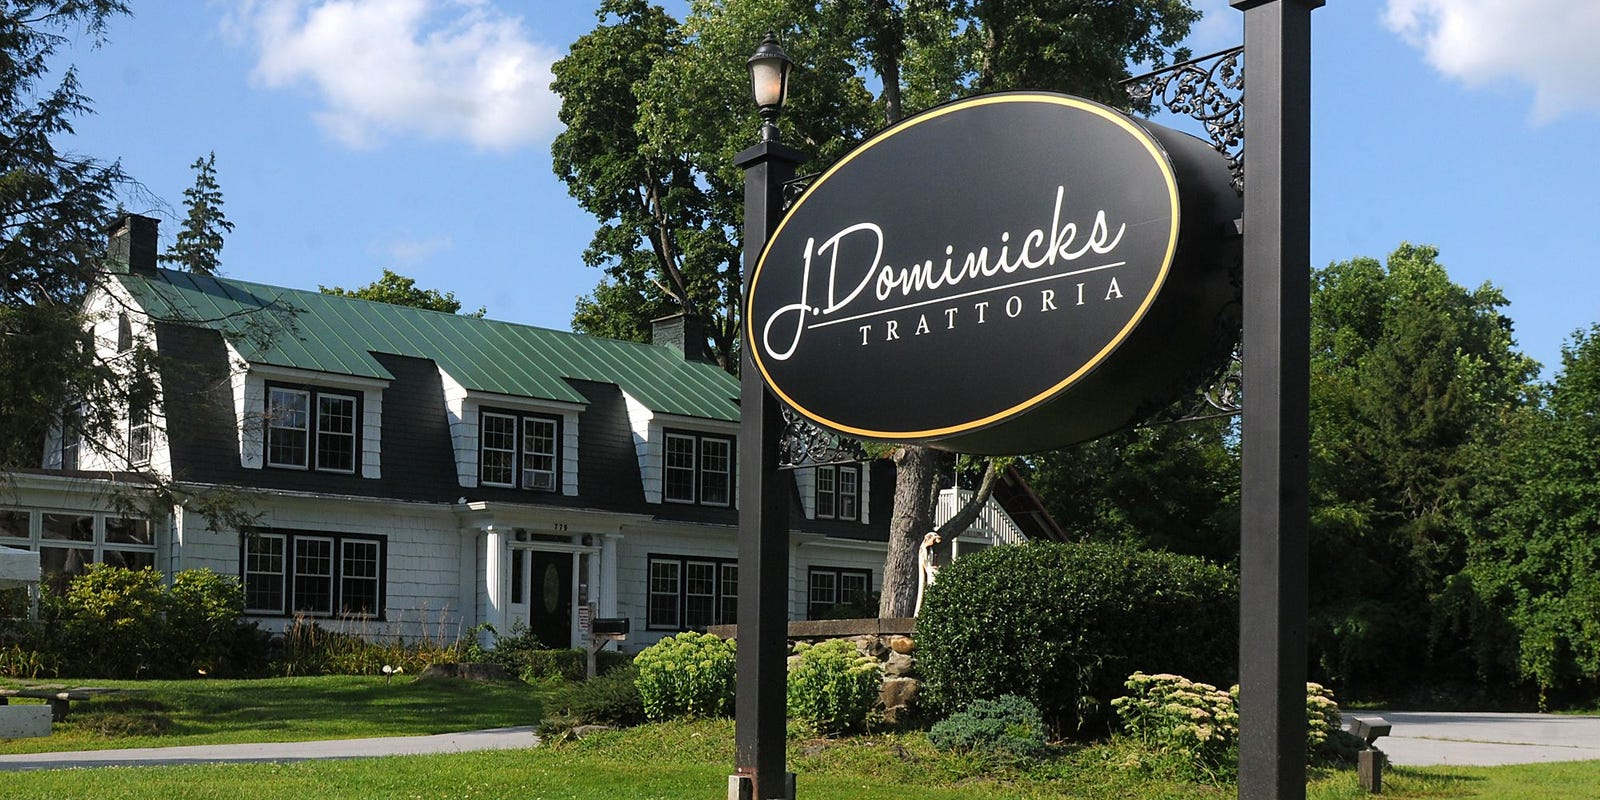 J Dominick's Trattoria Psychic Medium Event | Poughkeepsie, New York